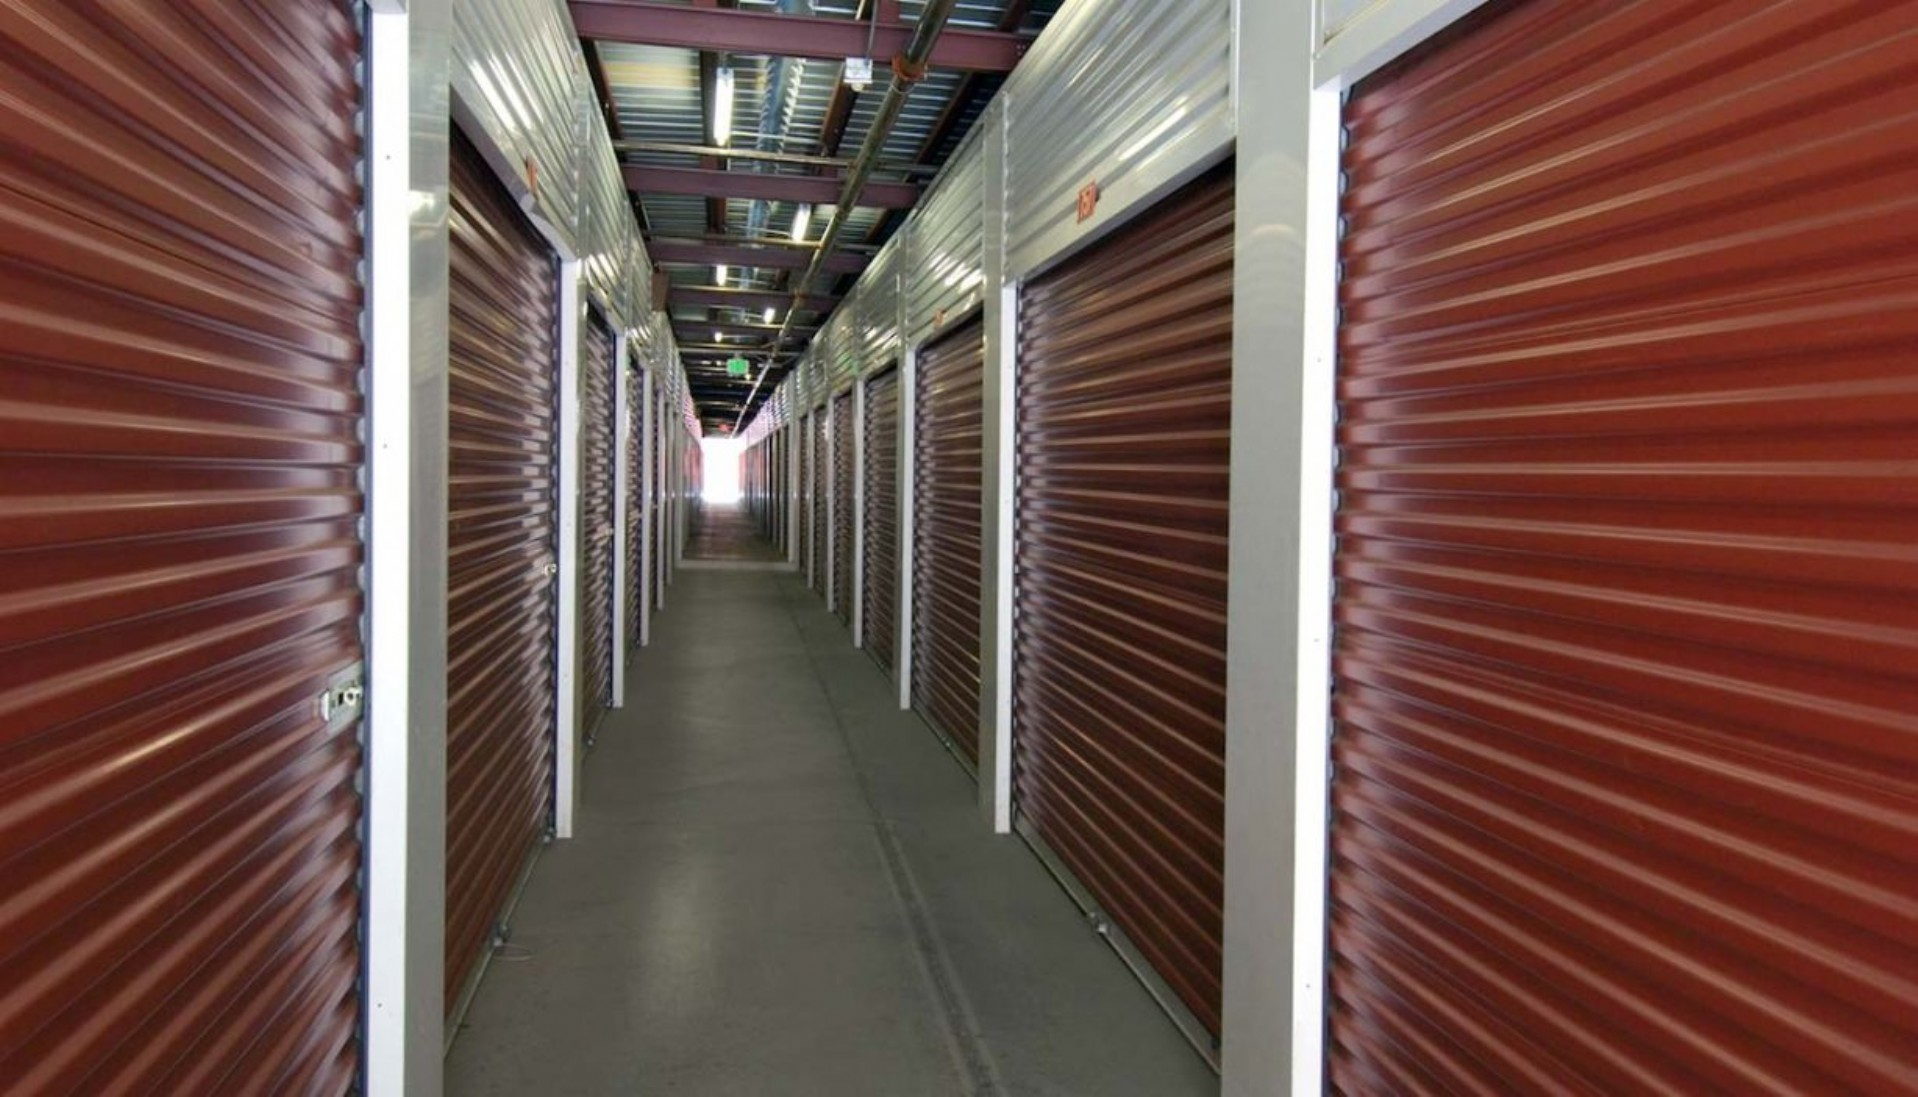 Hallway to ground floor accessible storage units with roll up doors